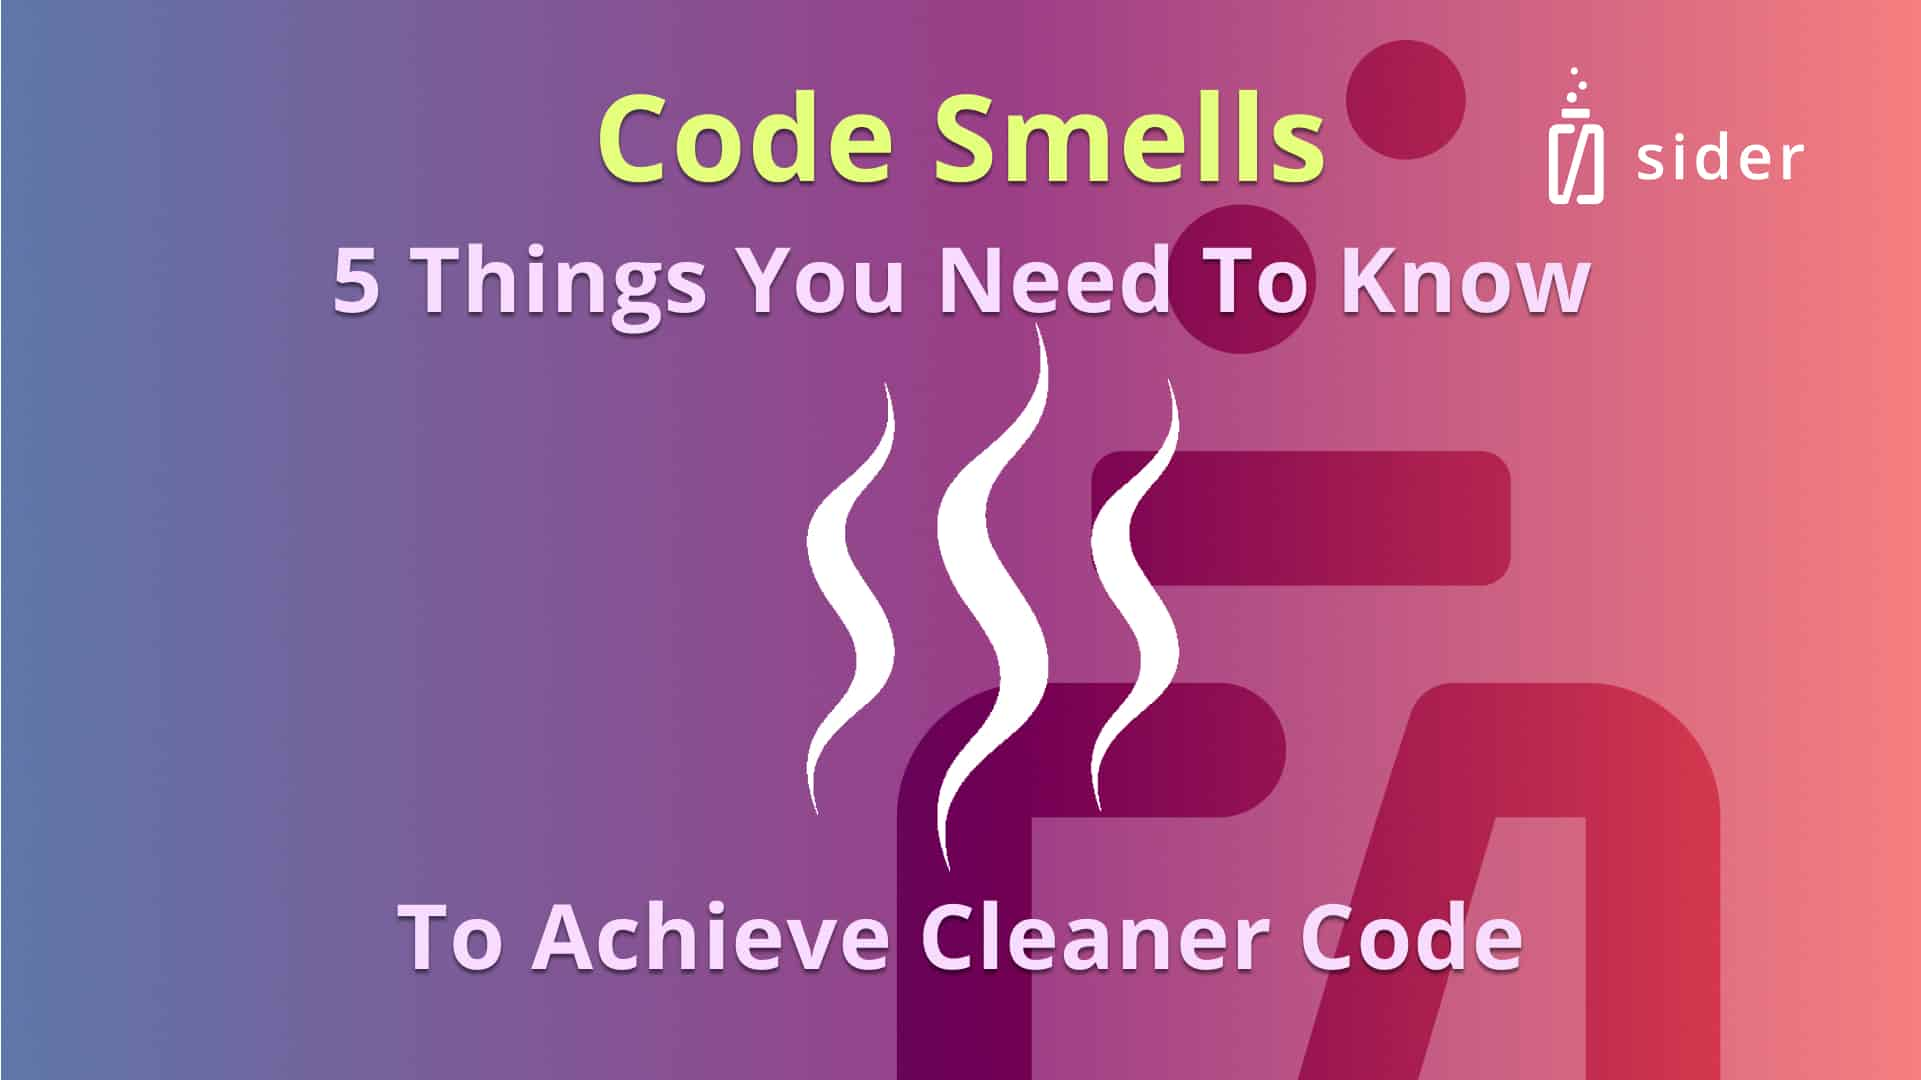 Read more about the article Code Smells and 5 Things You Need To Know To Achieve Cleaner Code